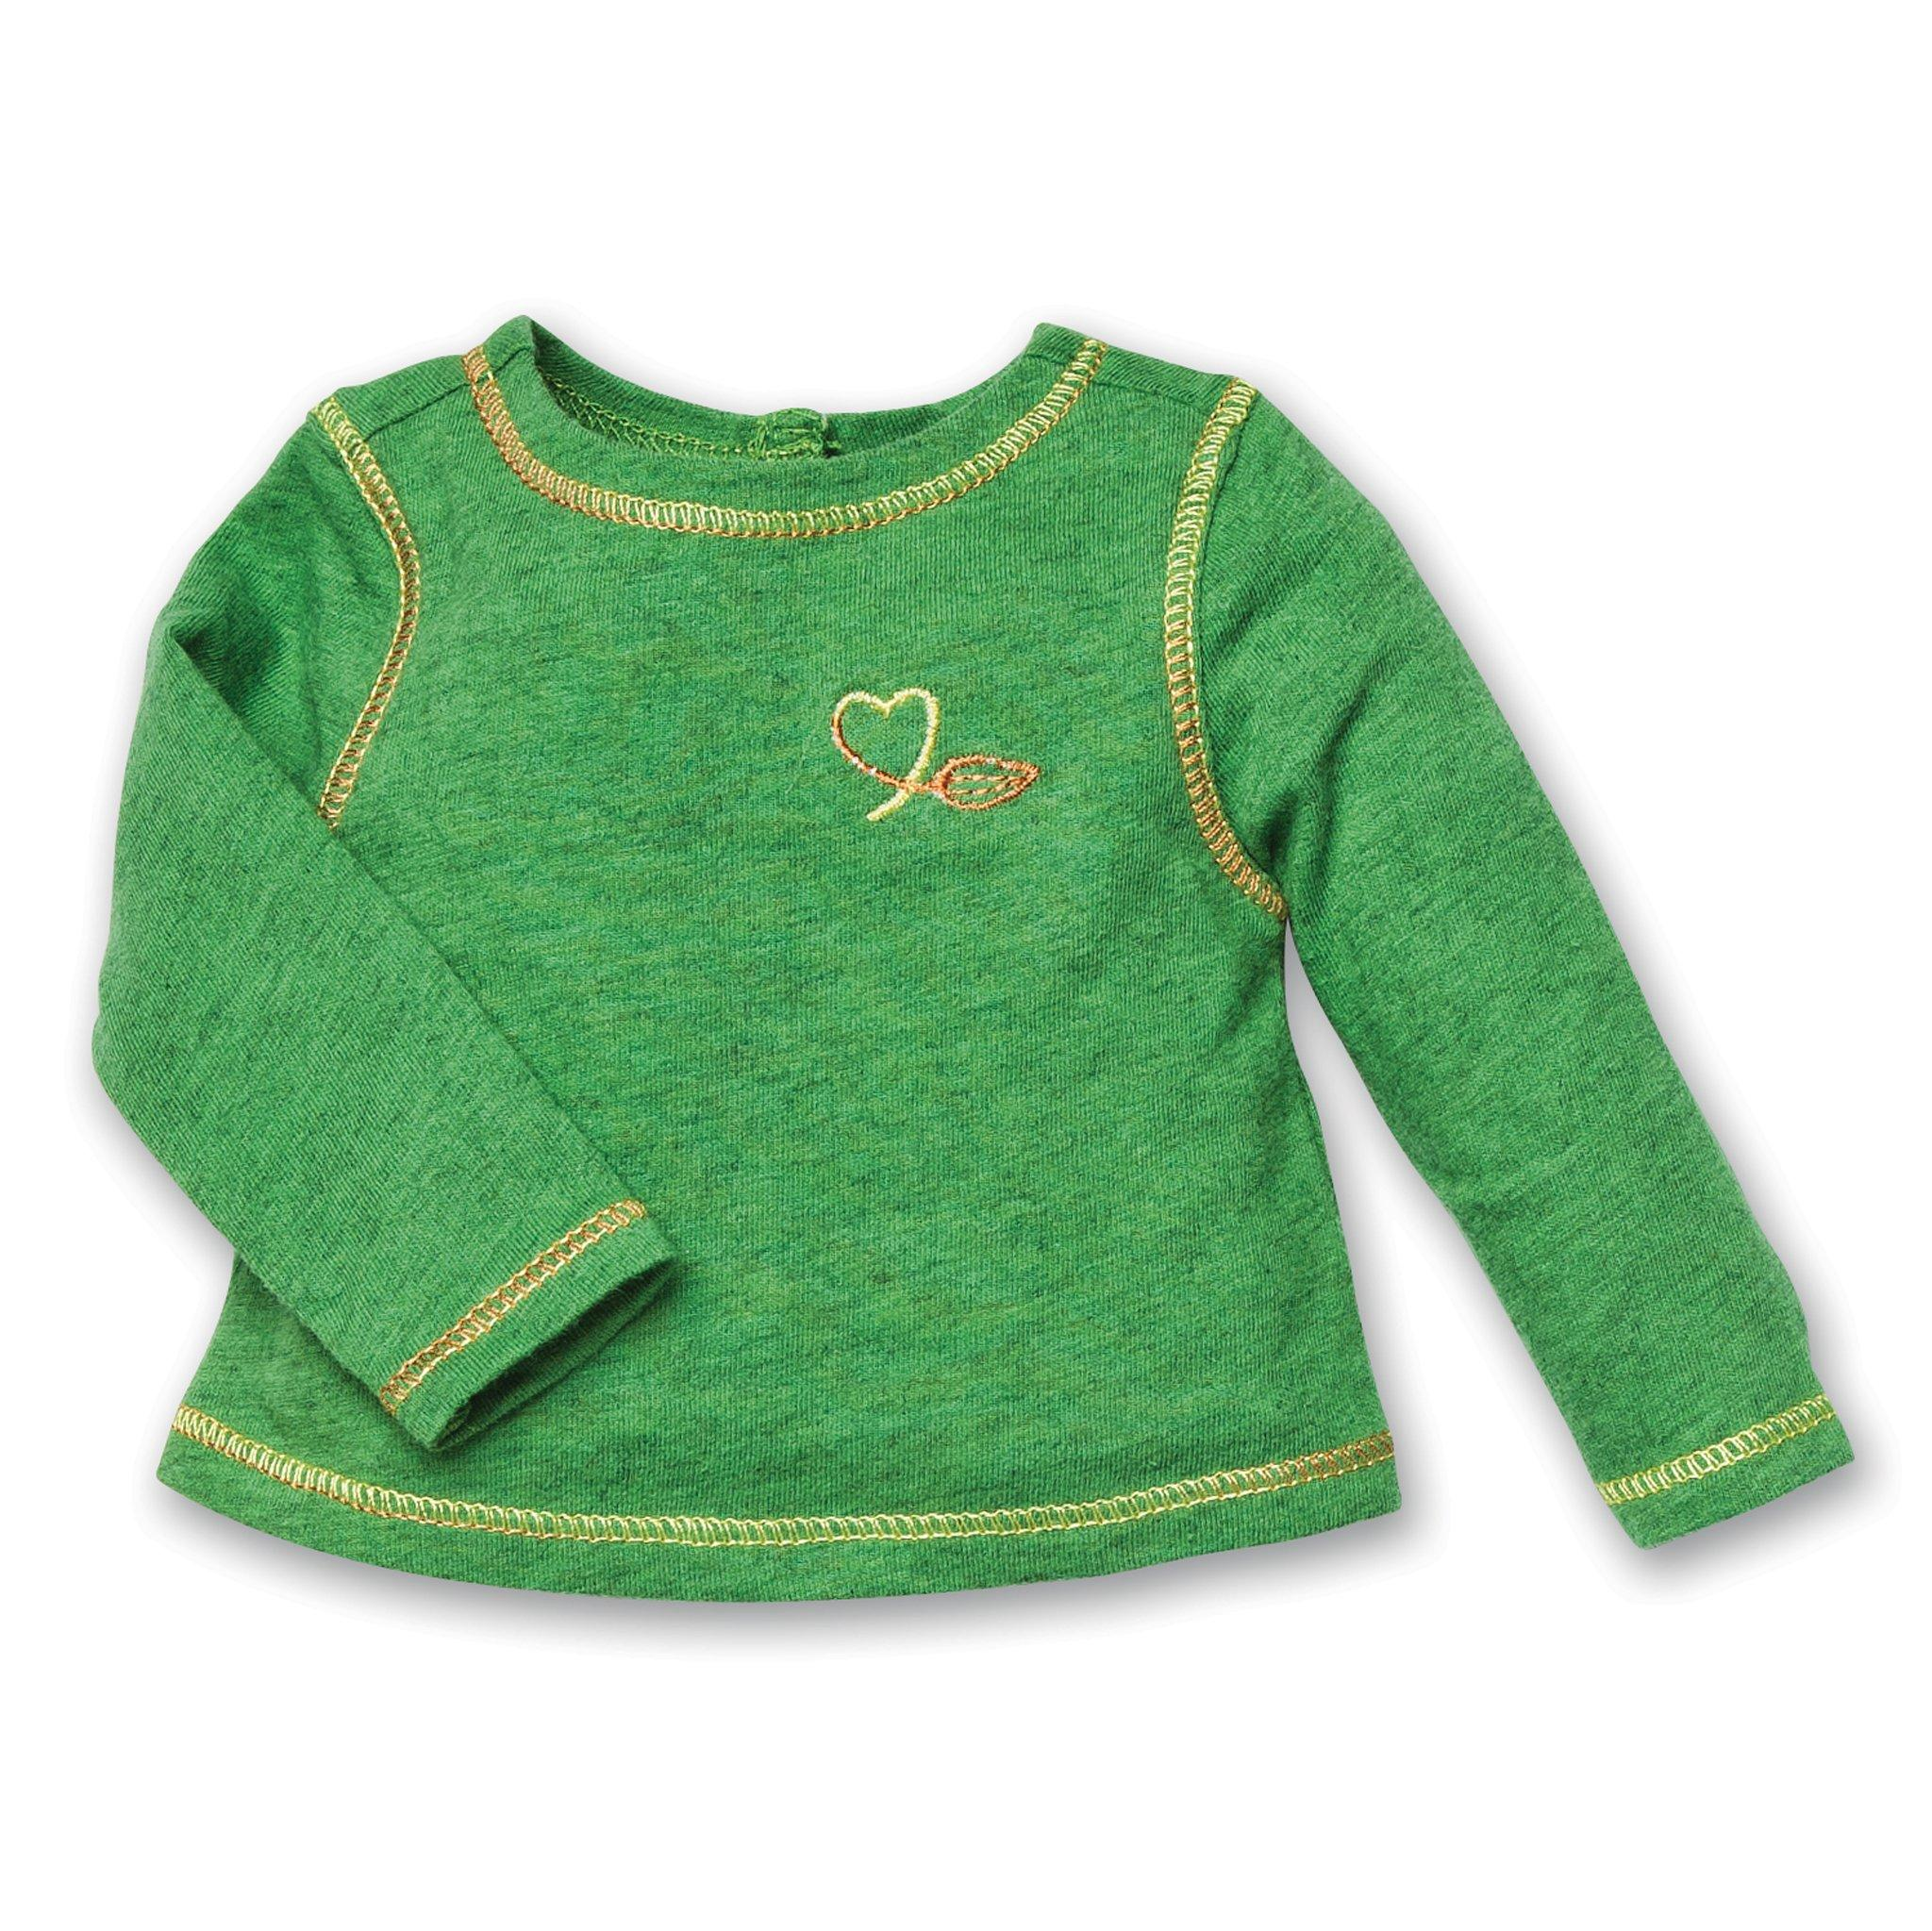 Green long-sleeved tee with heart print and colourful stitching fits all 18 inch dolls.